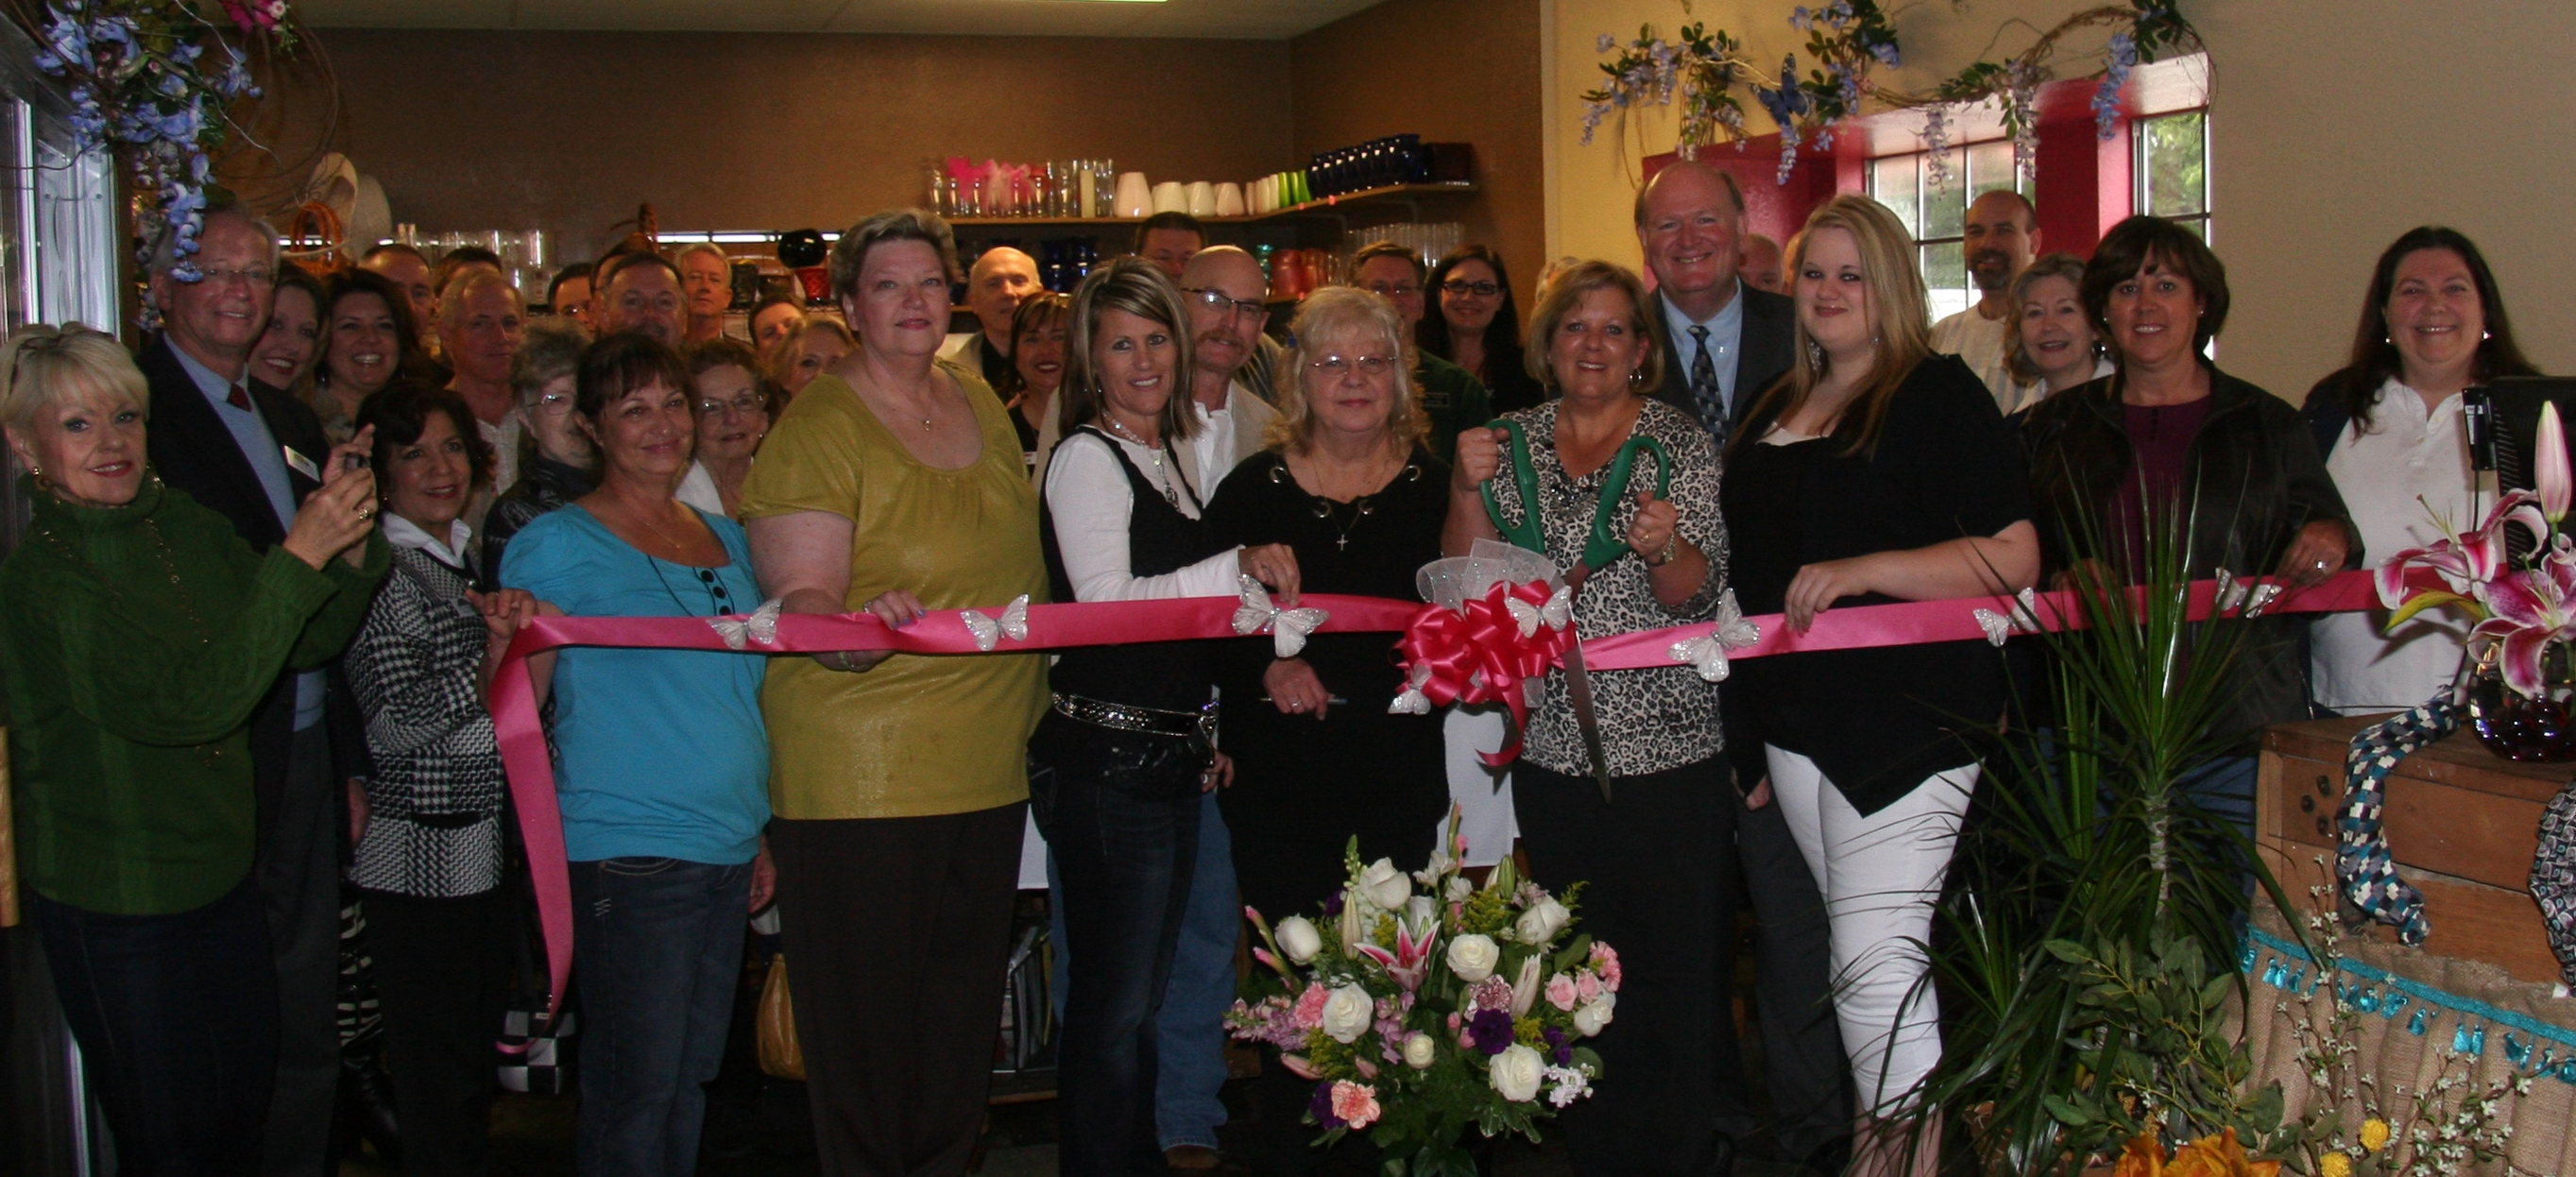 ribbon cutting - Mulkey Flowers